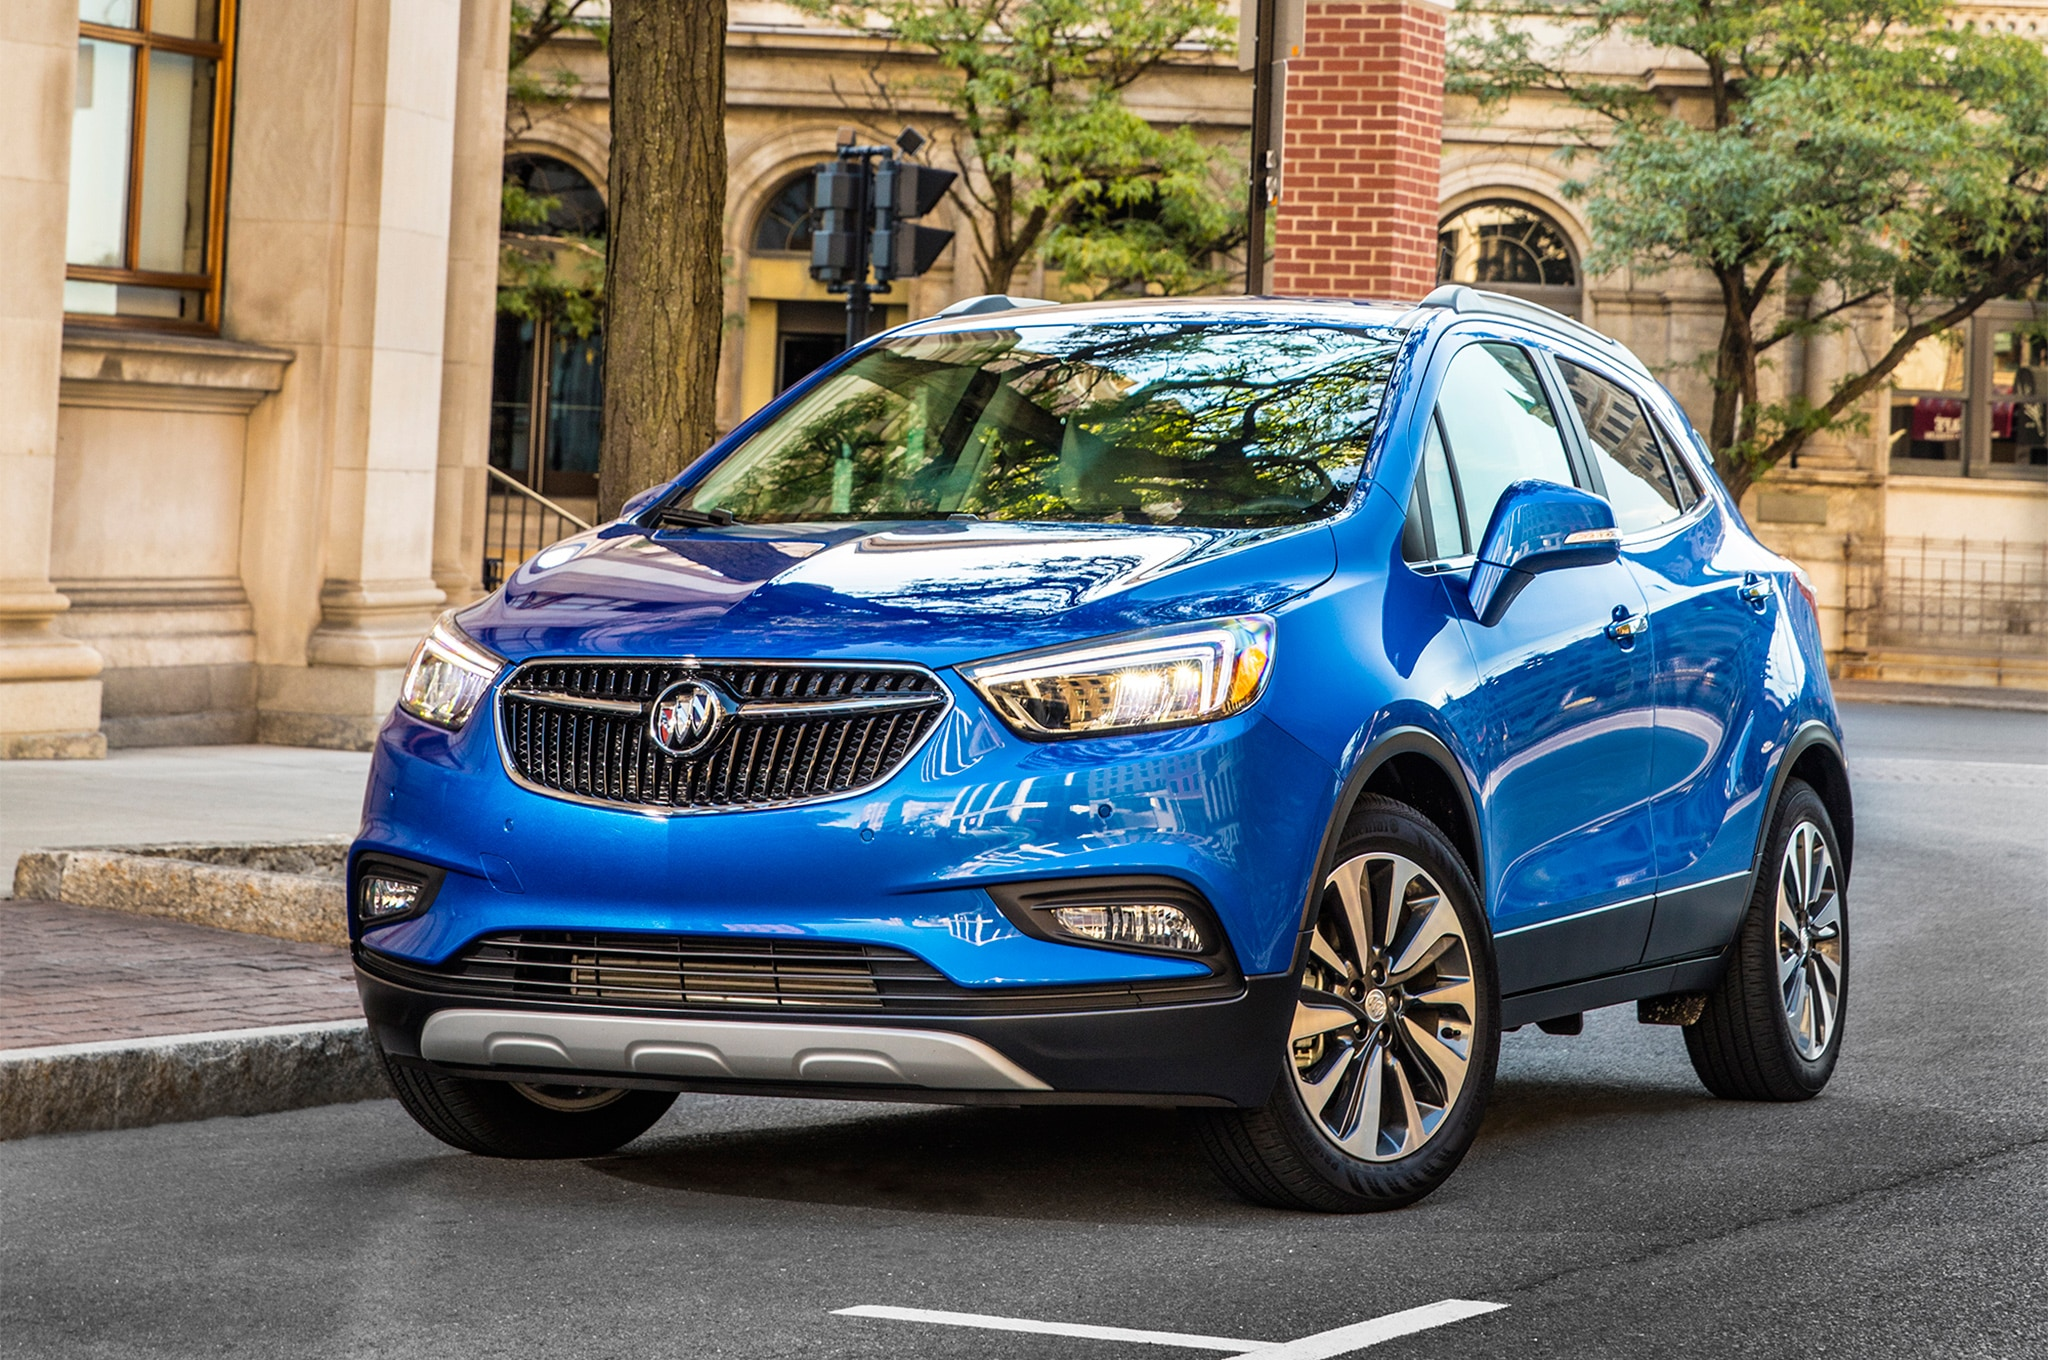 2017 buick encore refreshed at new york auto show automobile magazine. Black Bedroom Furniture Sets. Home Design Ideas